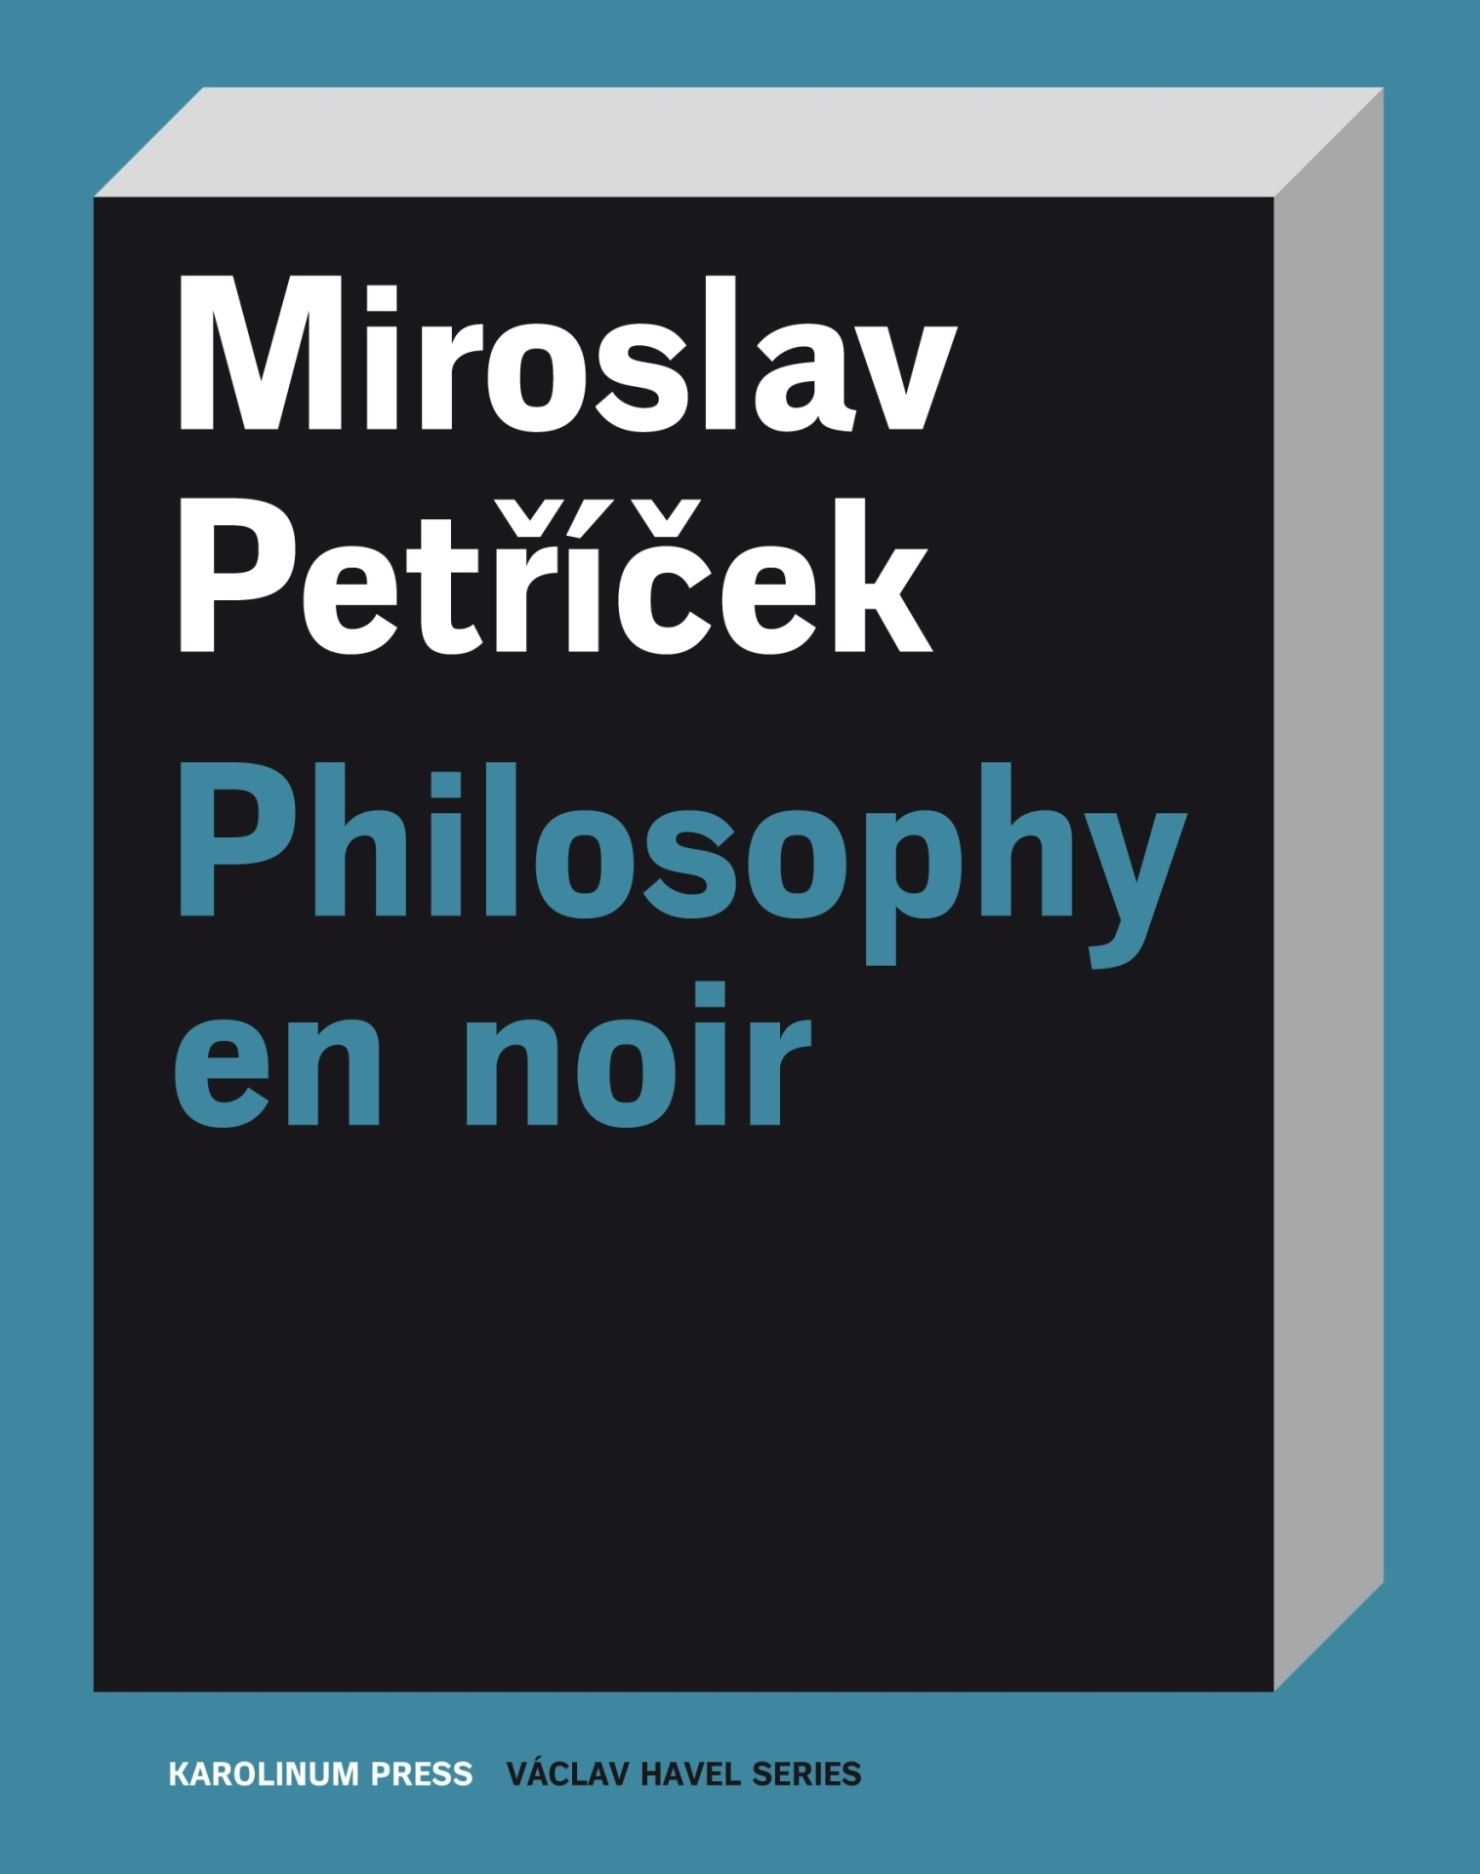 Philosophy en noir